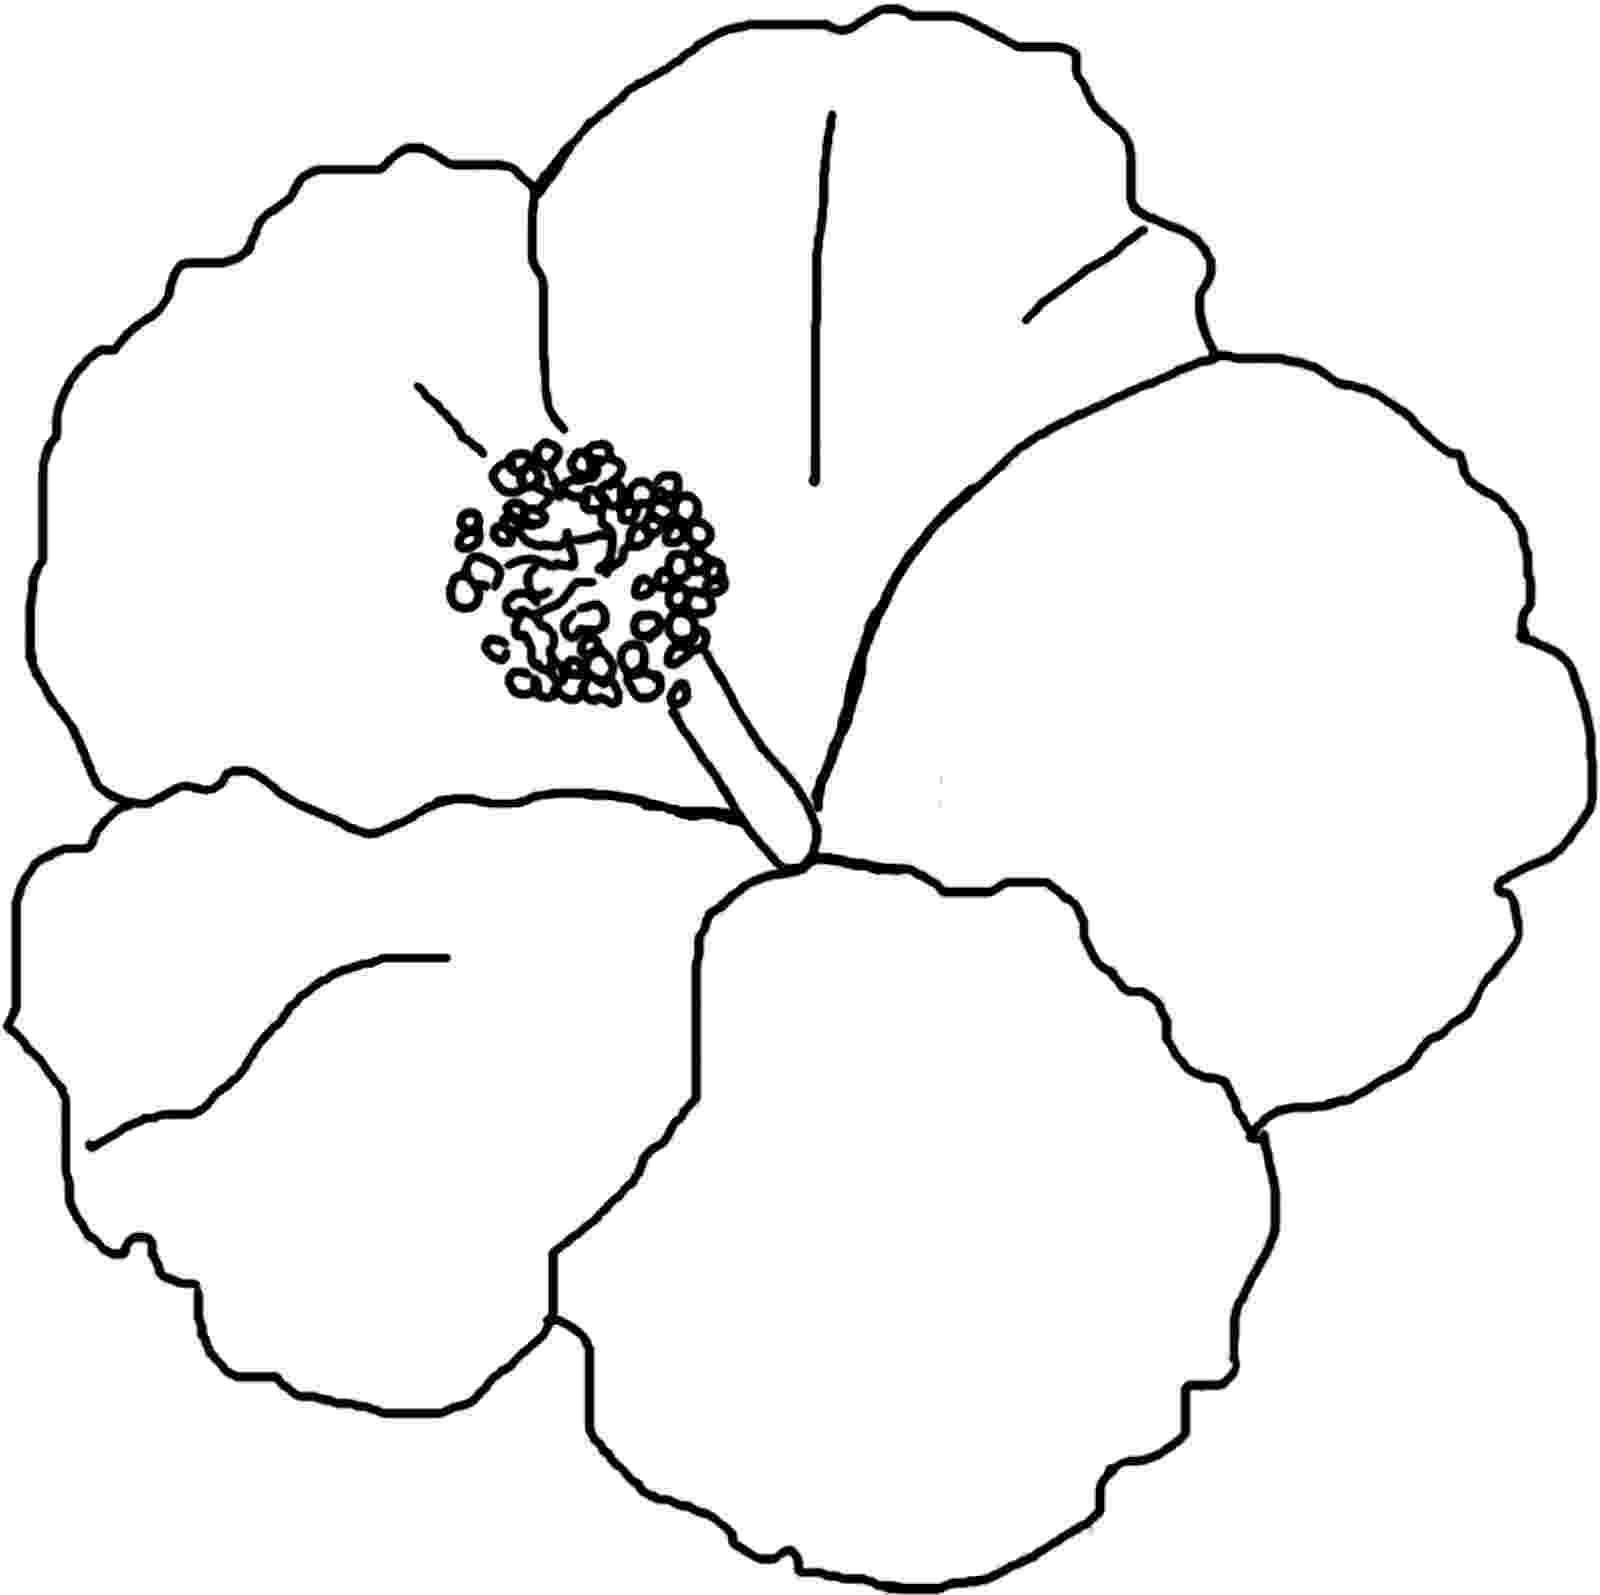 hibiscus coloring pages hibiscus flower in bloom coloring page color luna pages coloring hibiscus